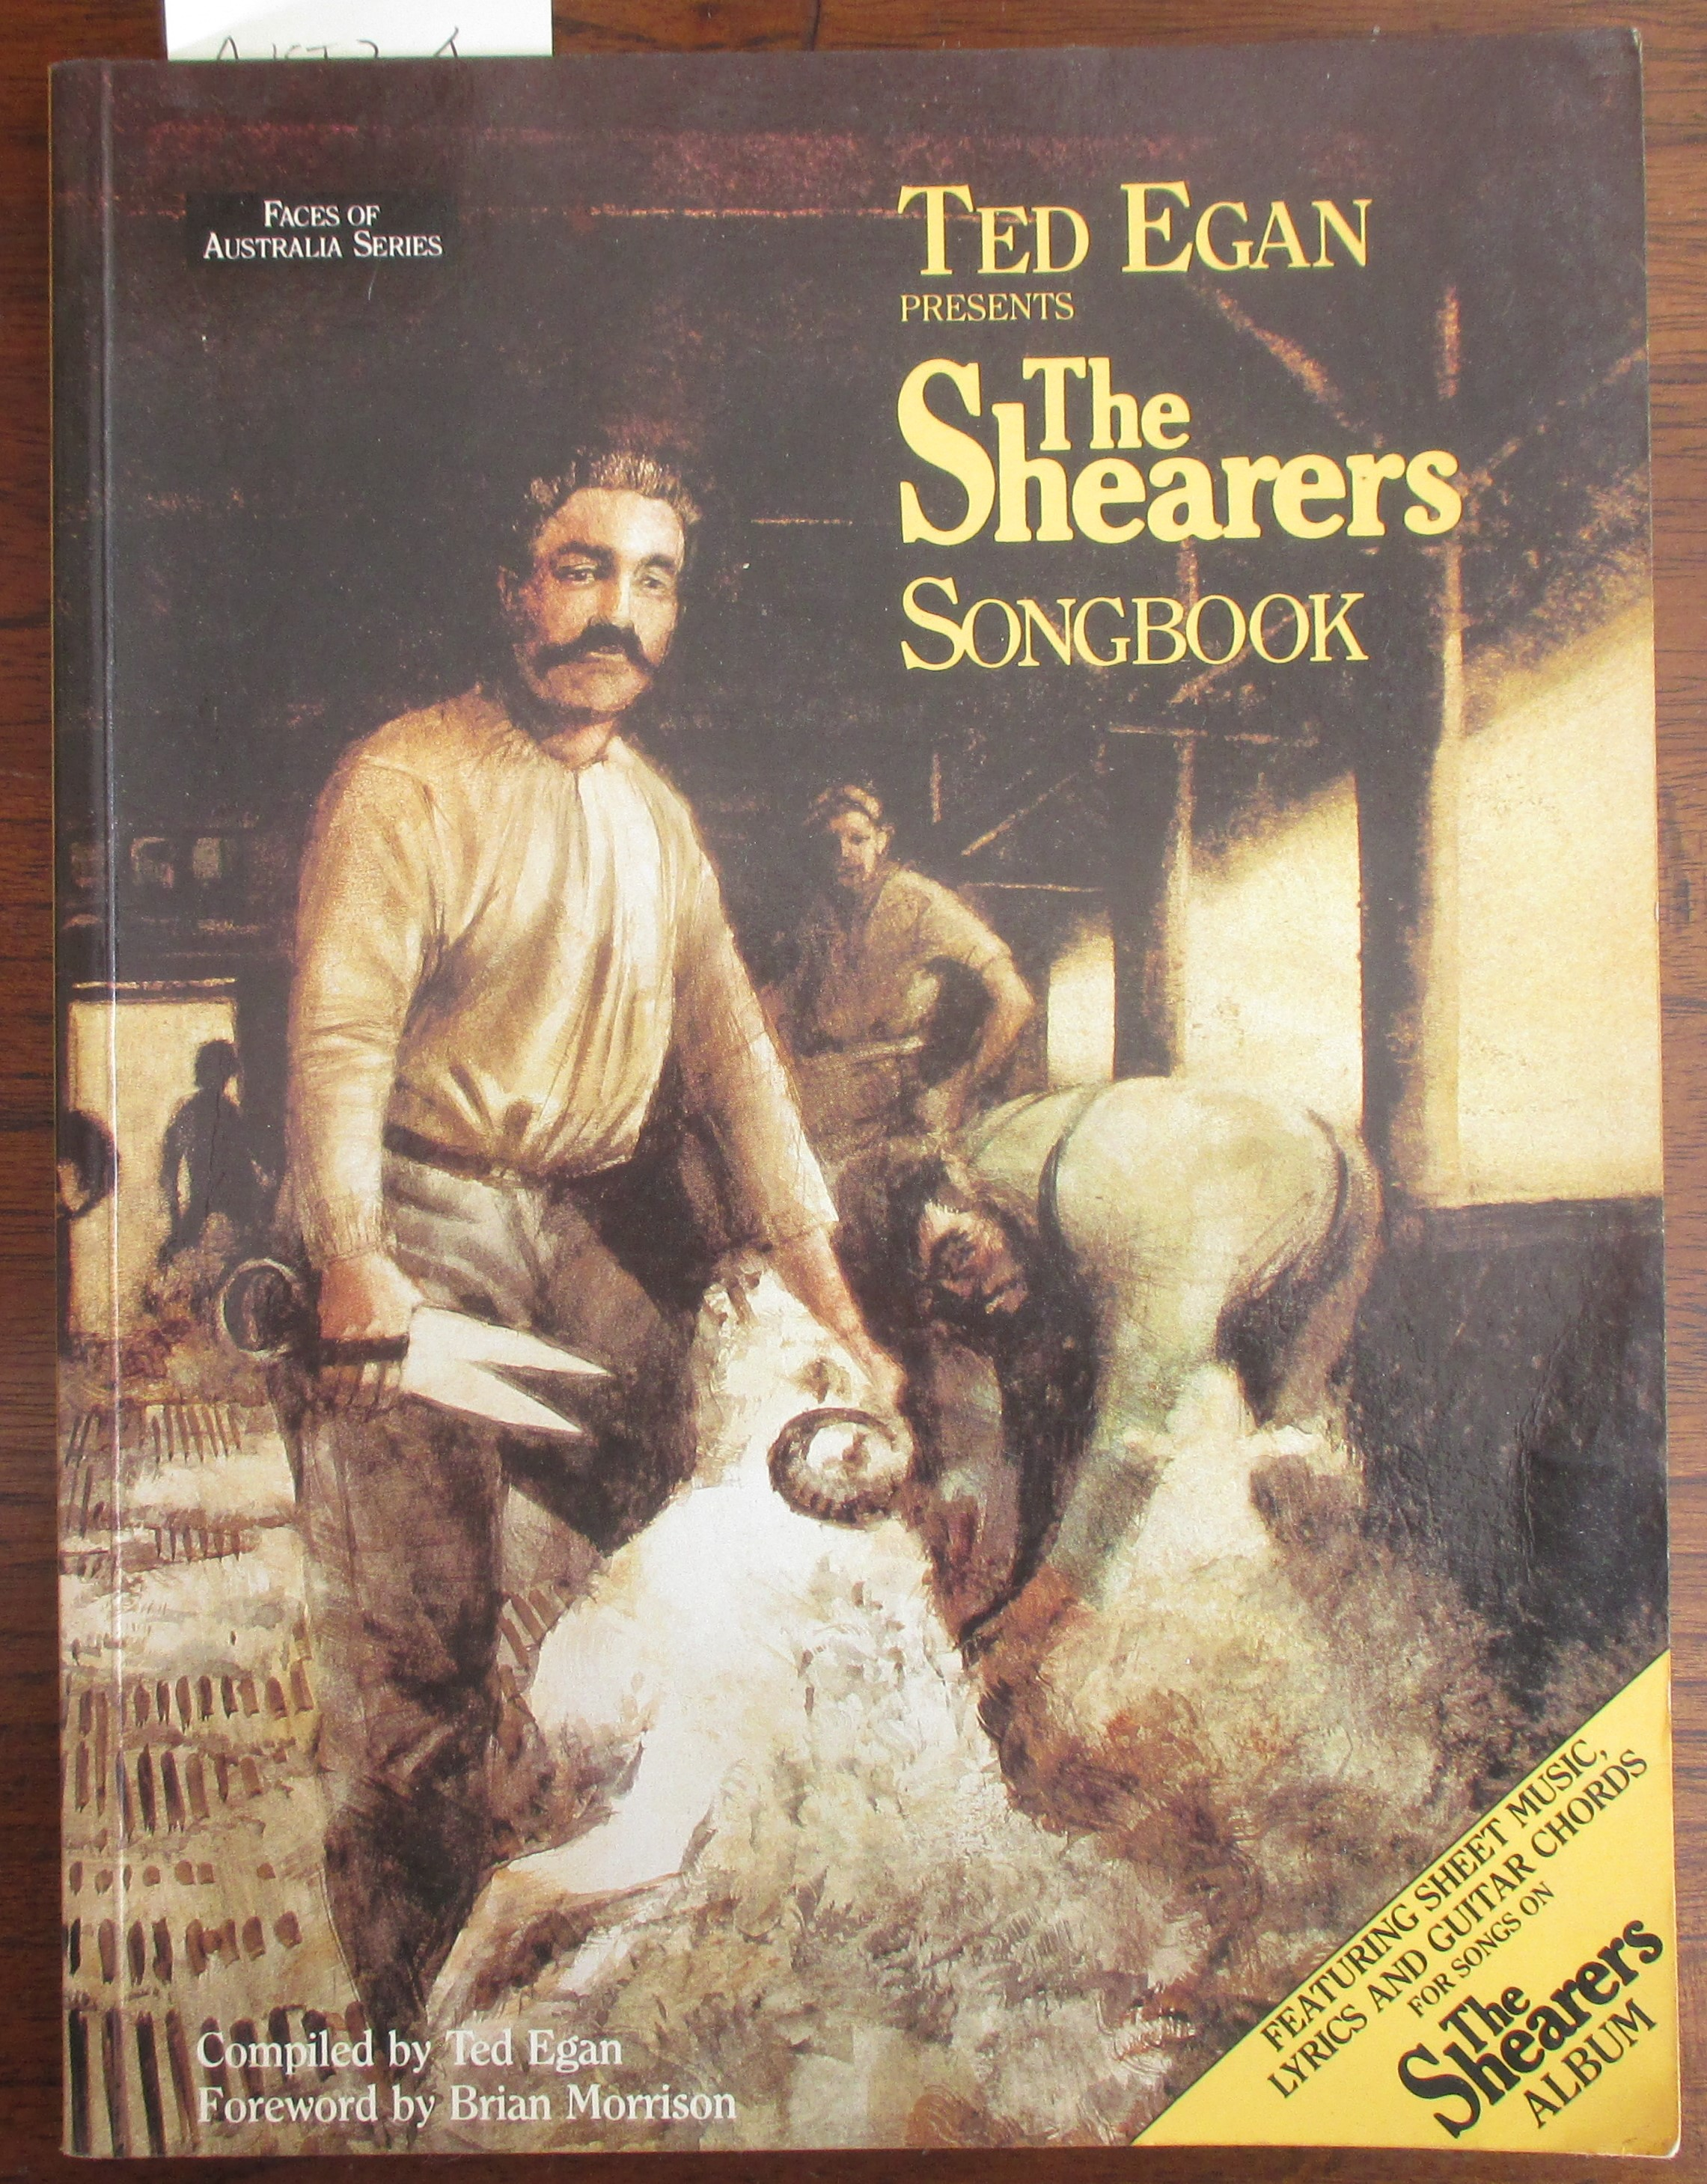 Image for Shearers Songbook, The: Faces of Australia Series